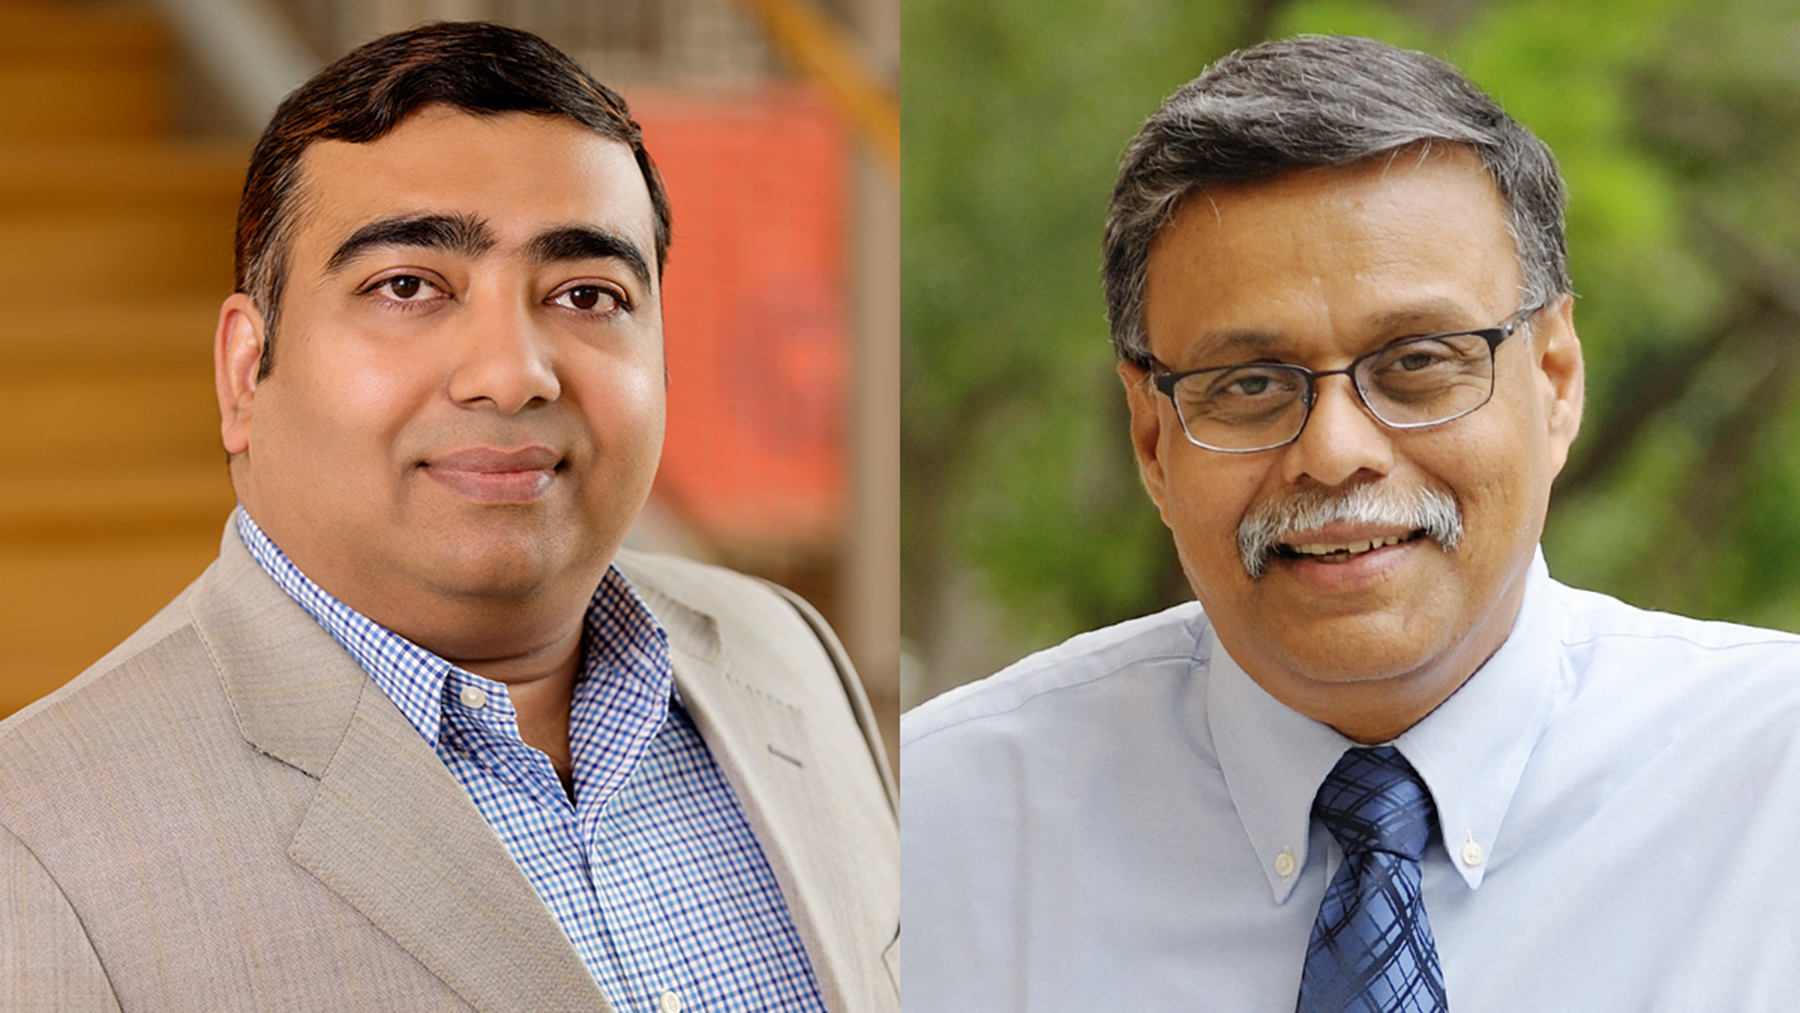 Illinois business professors Ujjal Kumar Mukherjee and Sridhar Seshadri